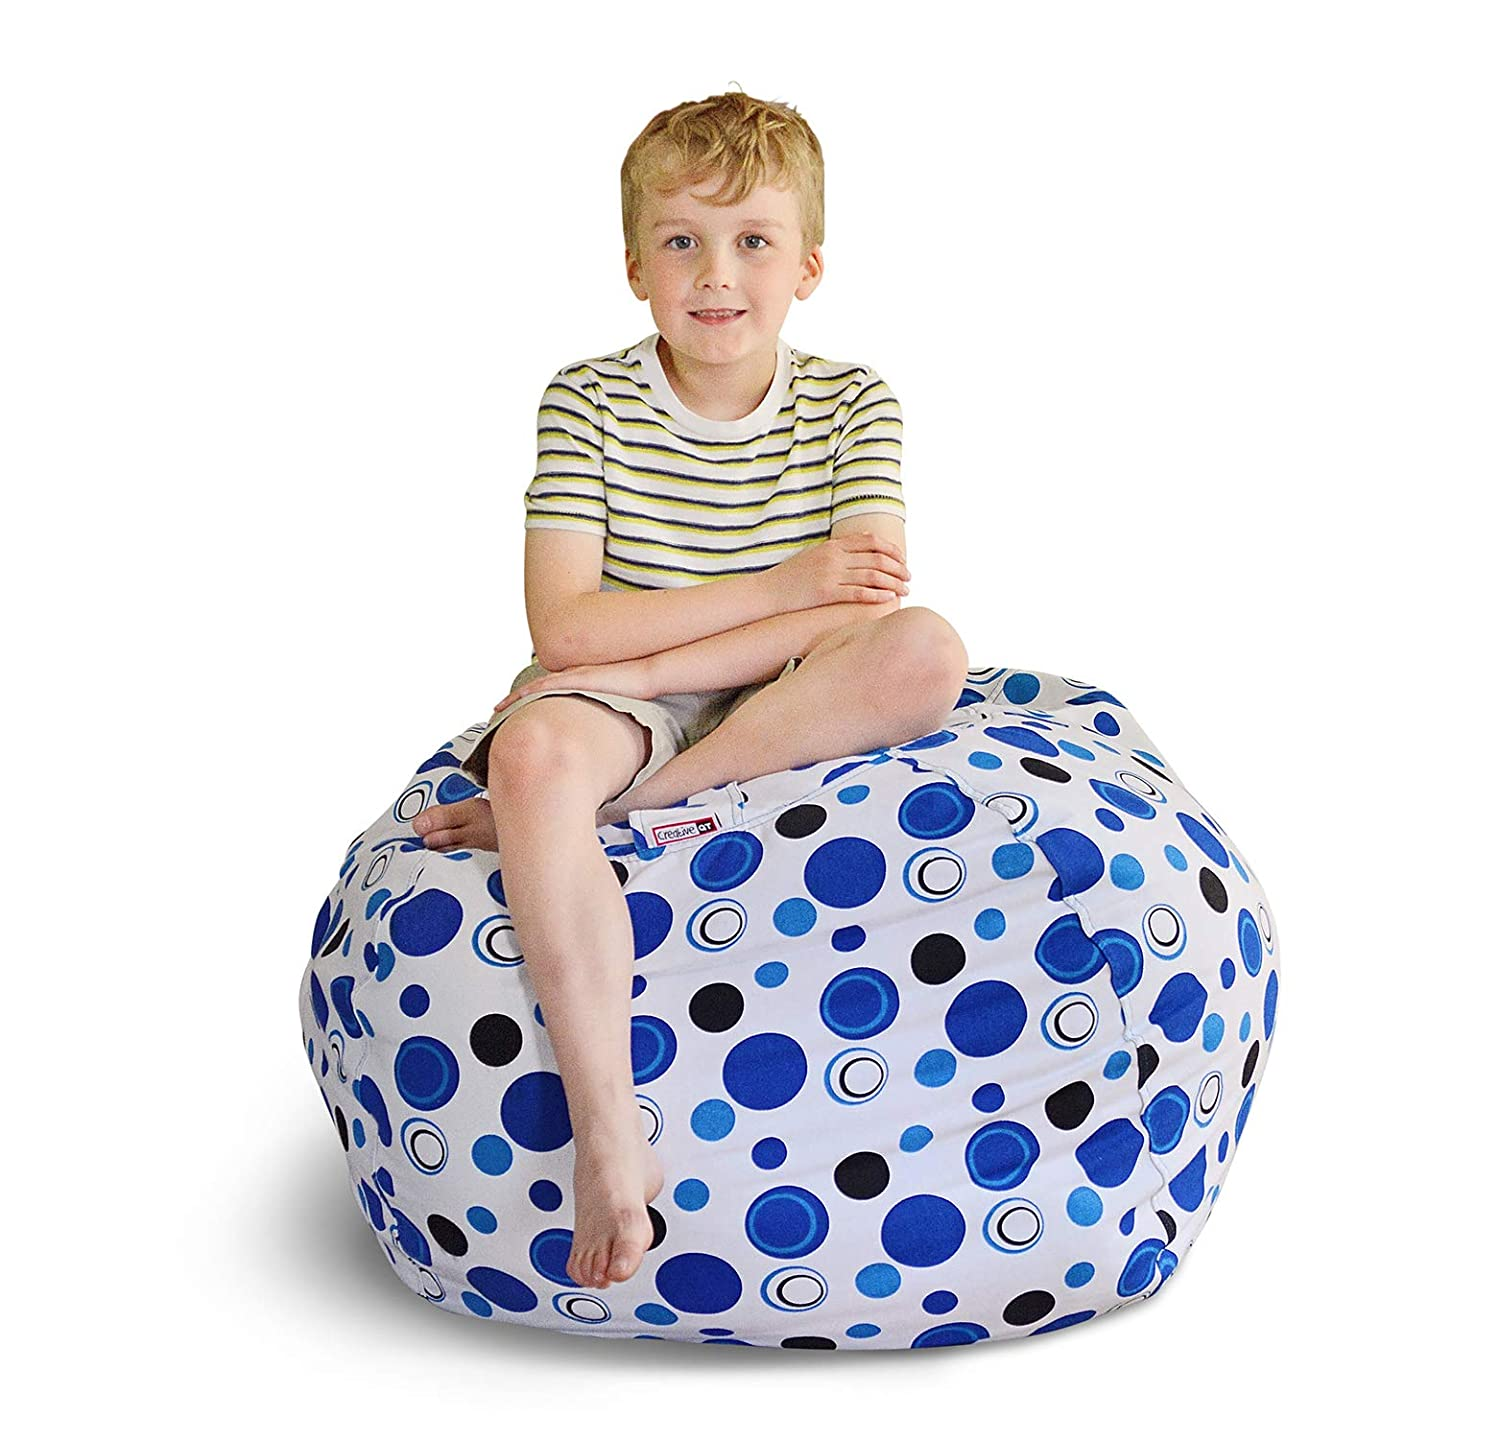 "Extra Large - Stuffed Animal Storage Bean Bag Chair - Premium Cotton Canvas - Clean Up The Room And Put Those Critters To Work For You! - By Creative Qt (38"", Blue Polka Dot)"